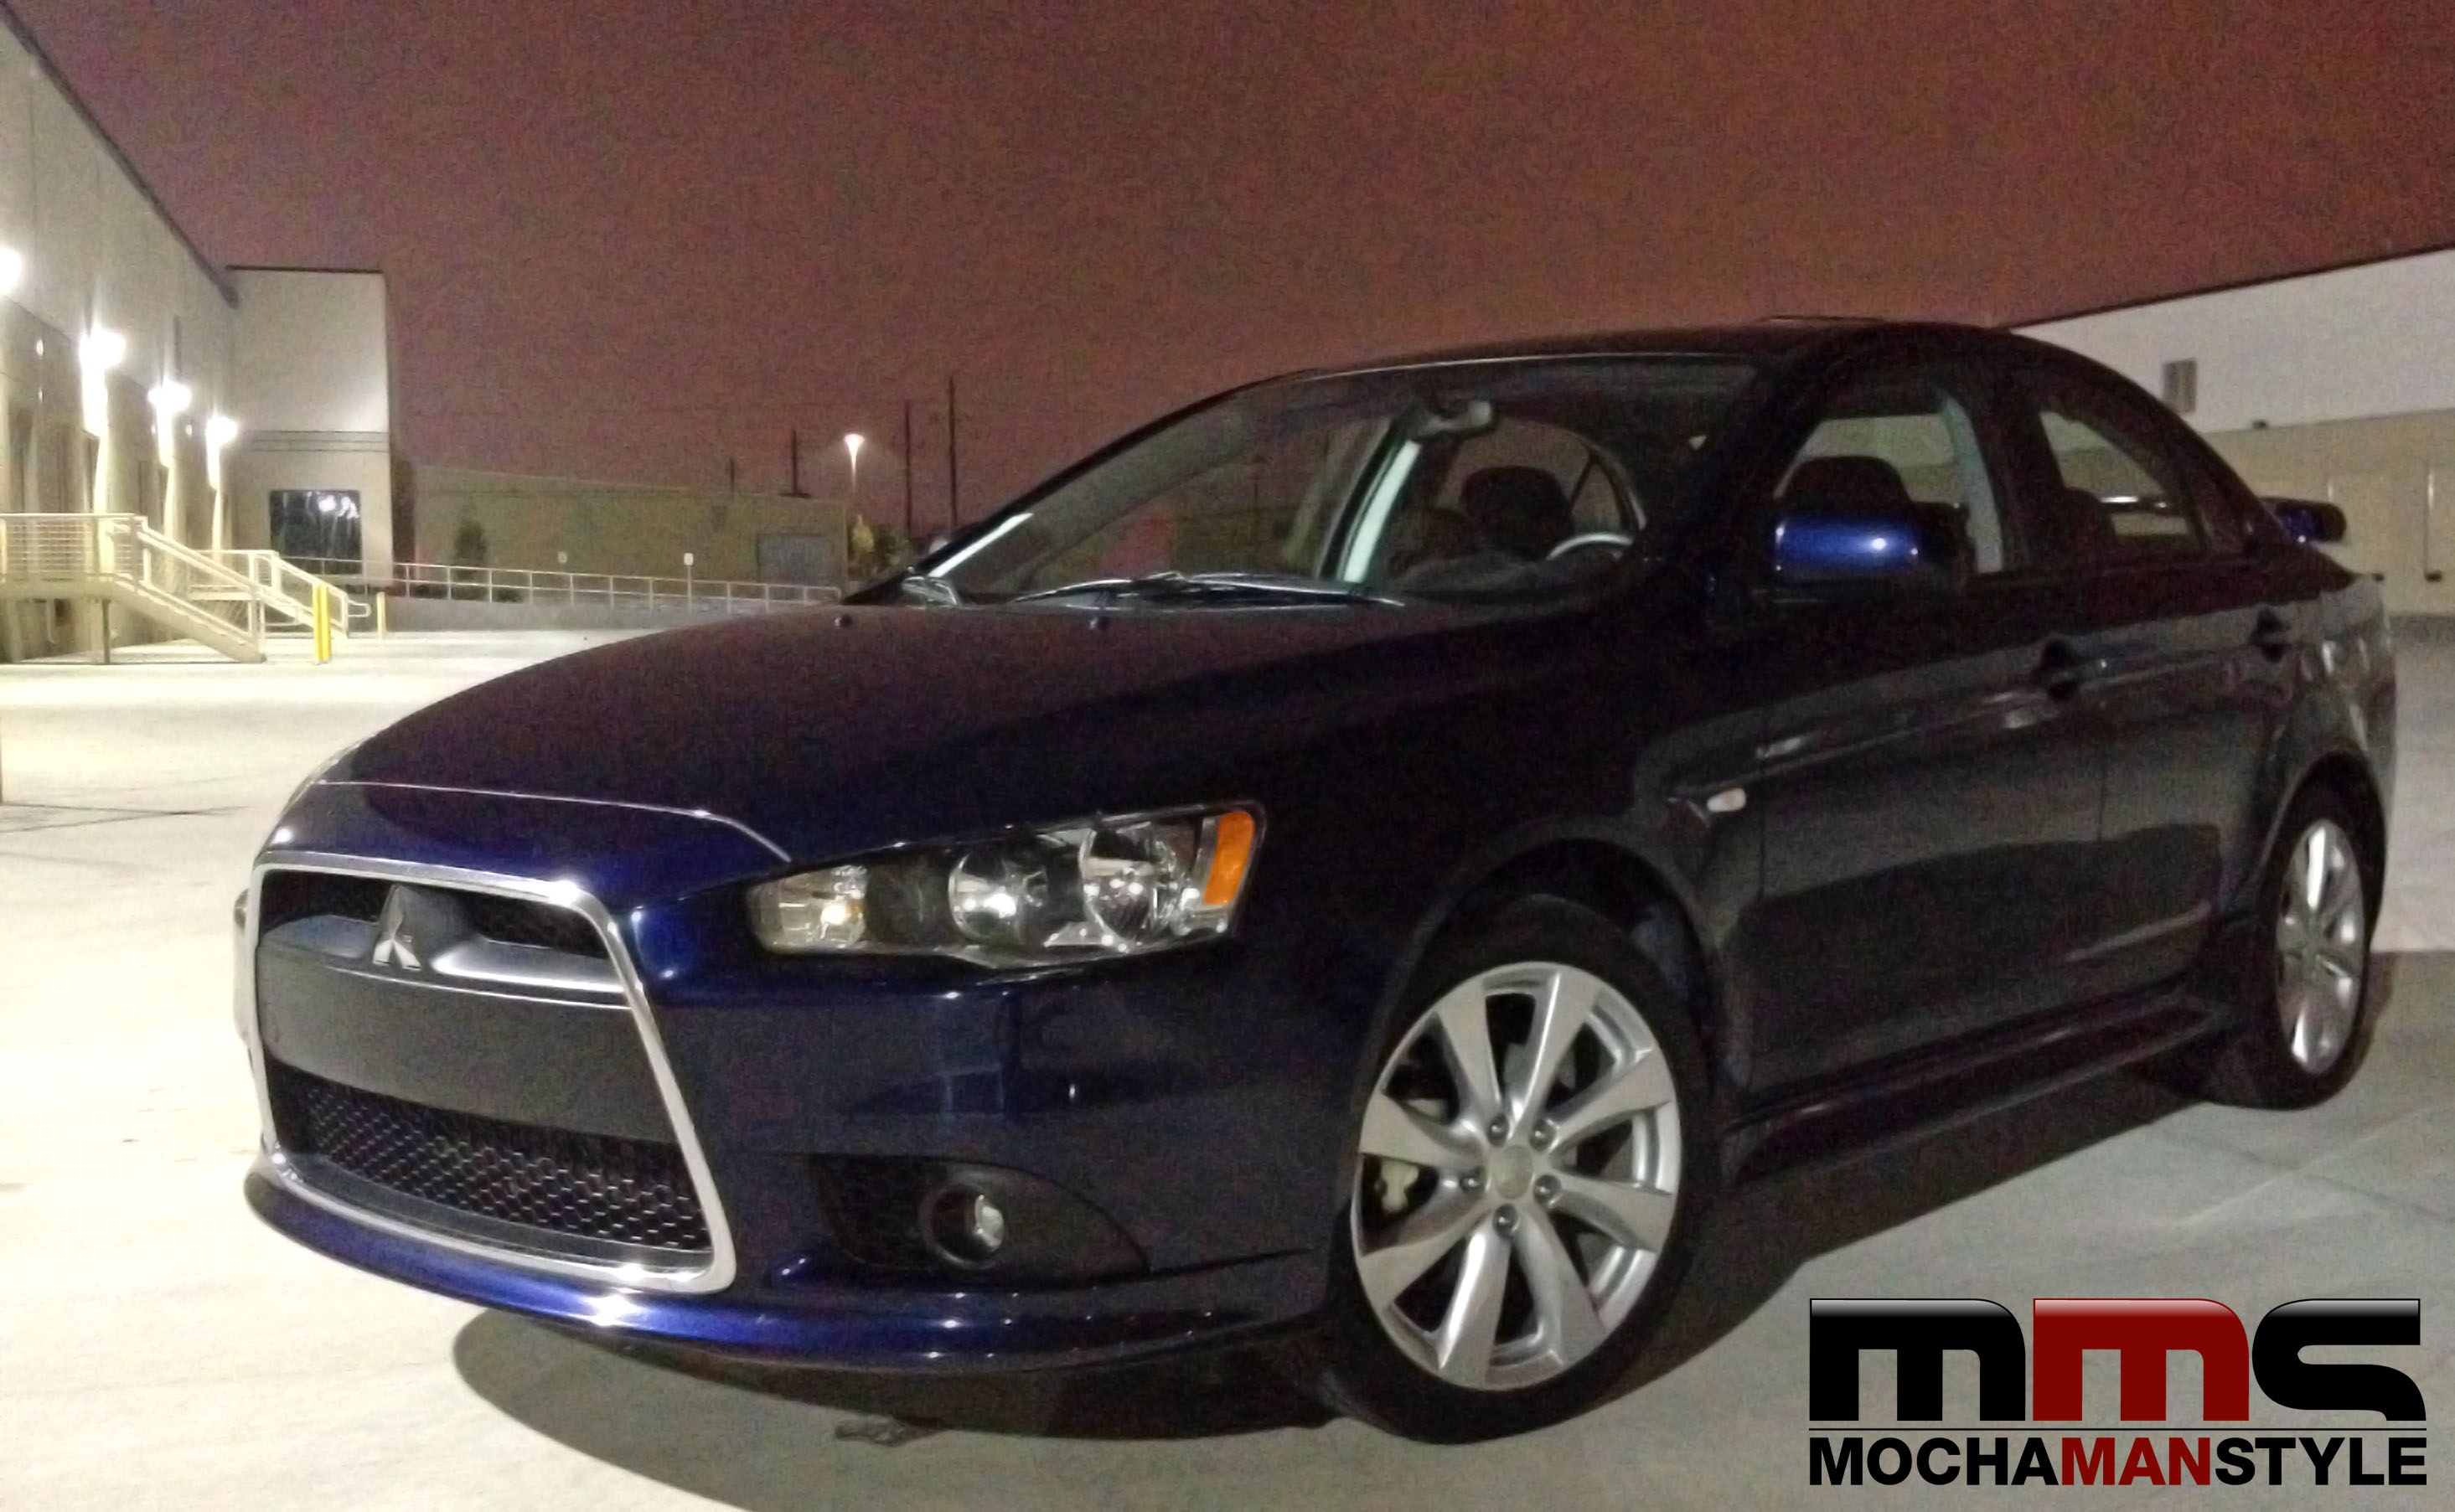 The 2014 Mitsubishi Lancer GT Will Satisfy Your Need for Speed